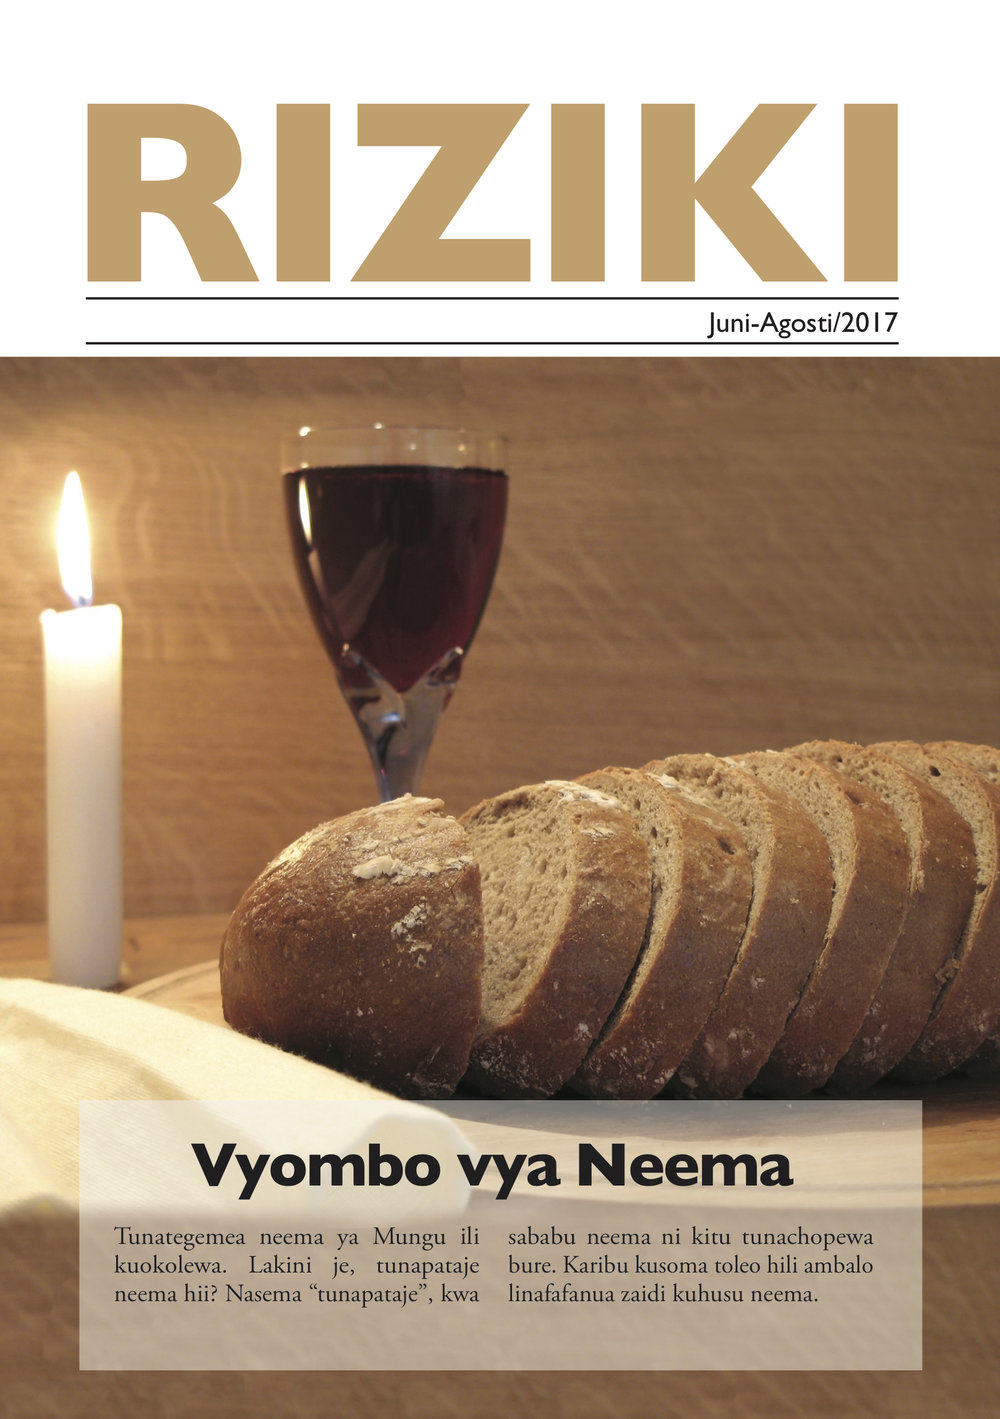 The latest RIZIKI (number 2, 2017) is now available. You can read it online by clicking this link:  https://issuu.com/riziki/docs/riziki_2_2017